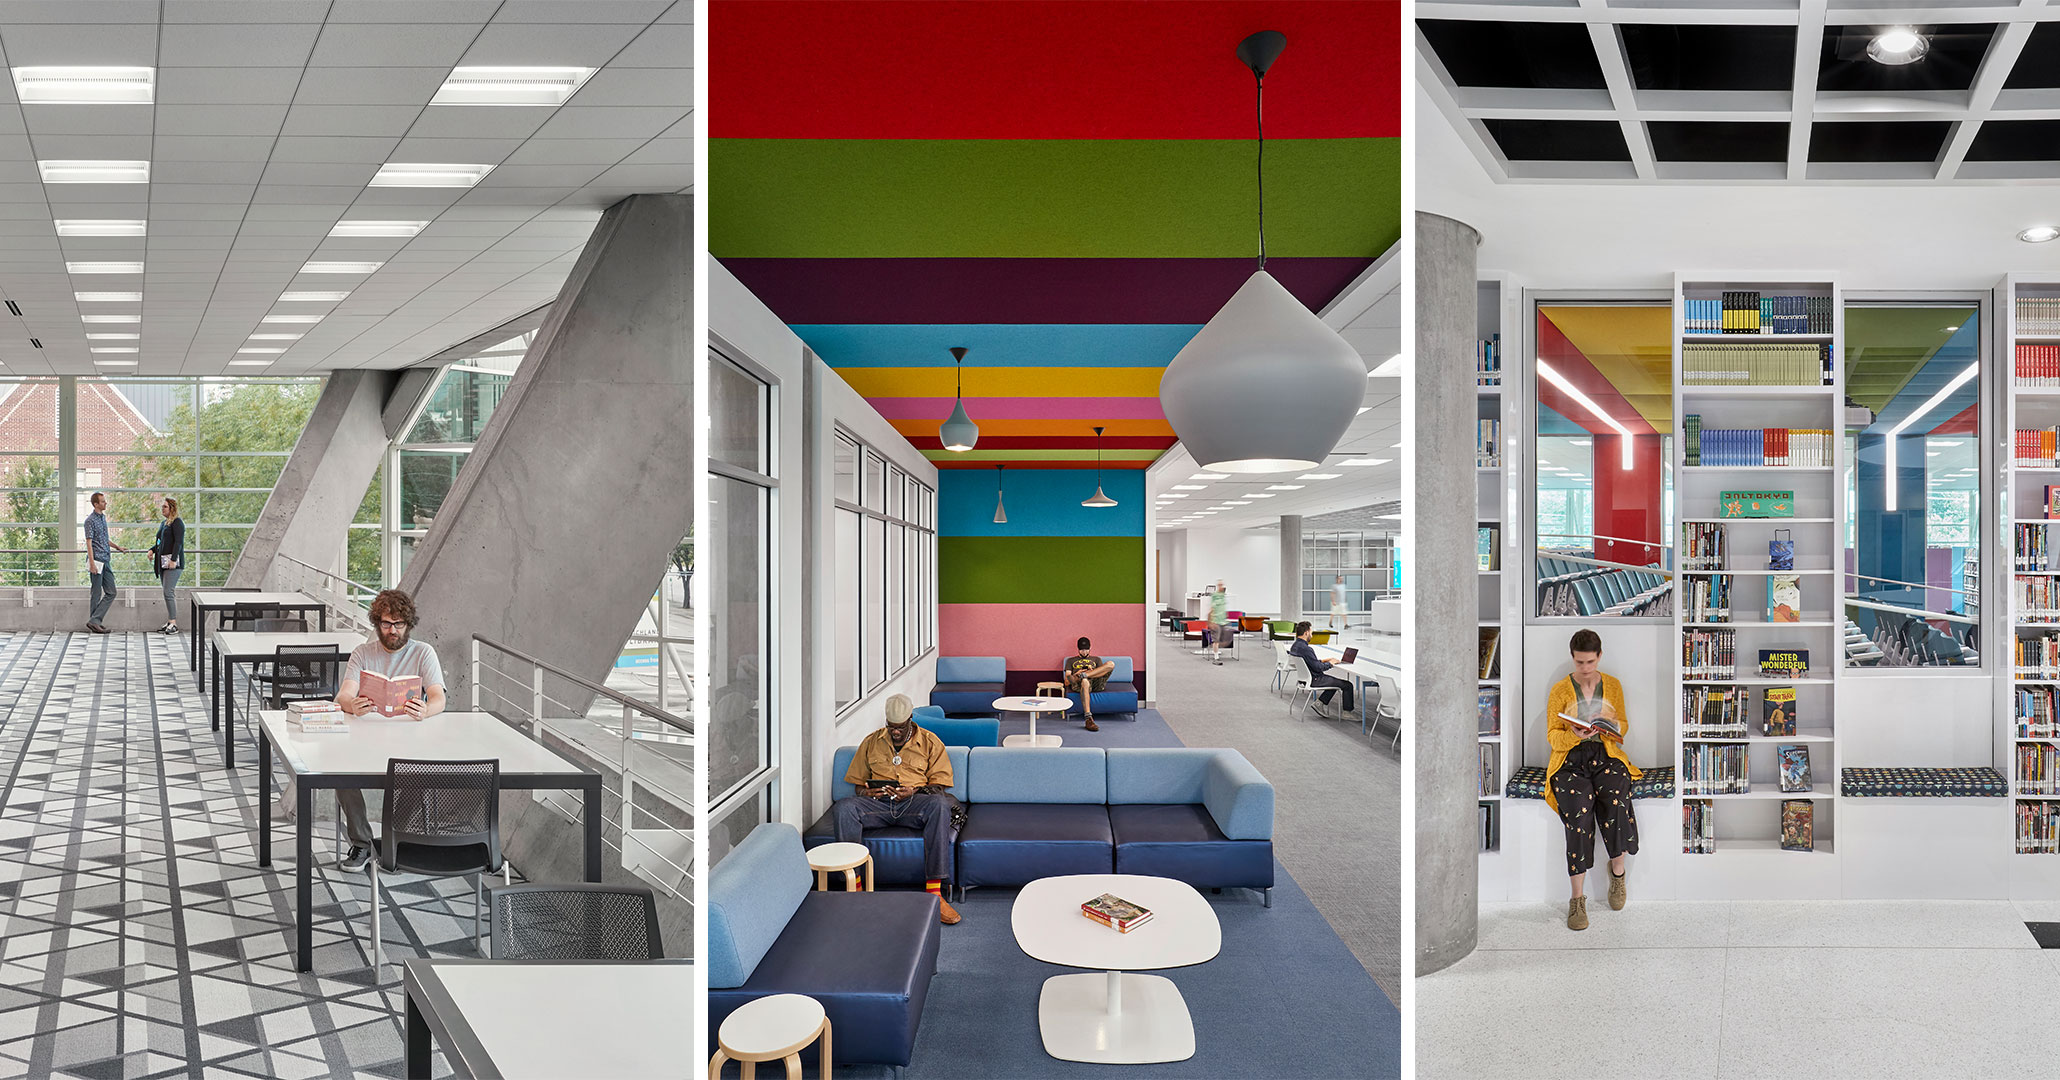 Richland County Library worked with Boudreaux architects to design modern engaging spaces.